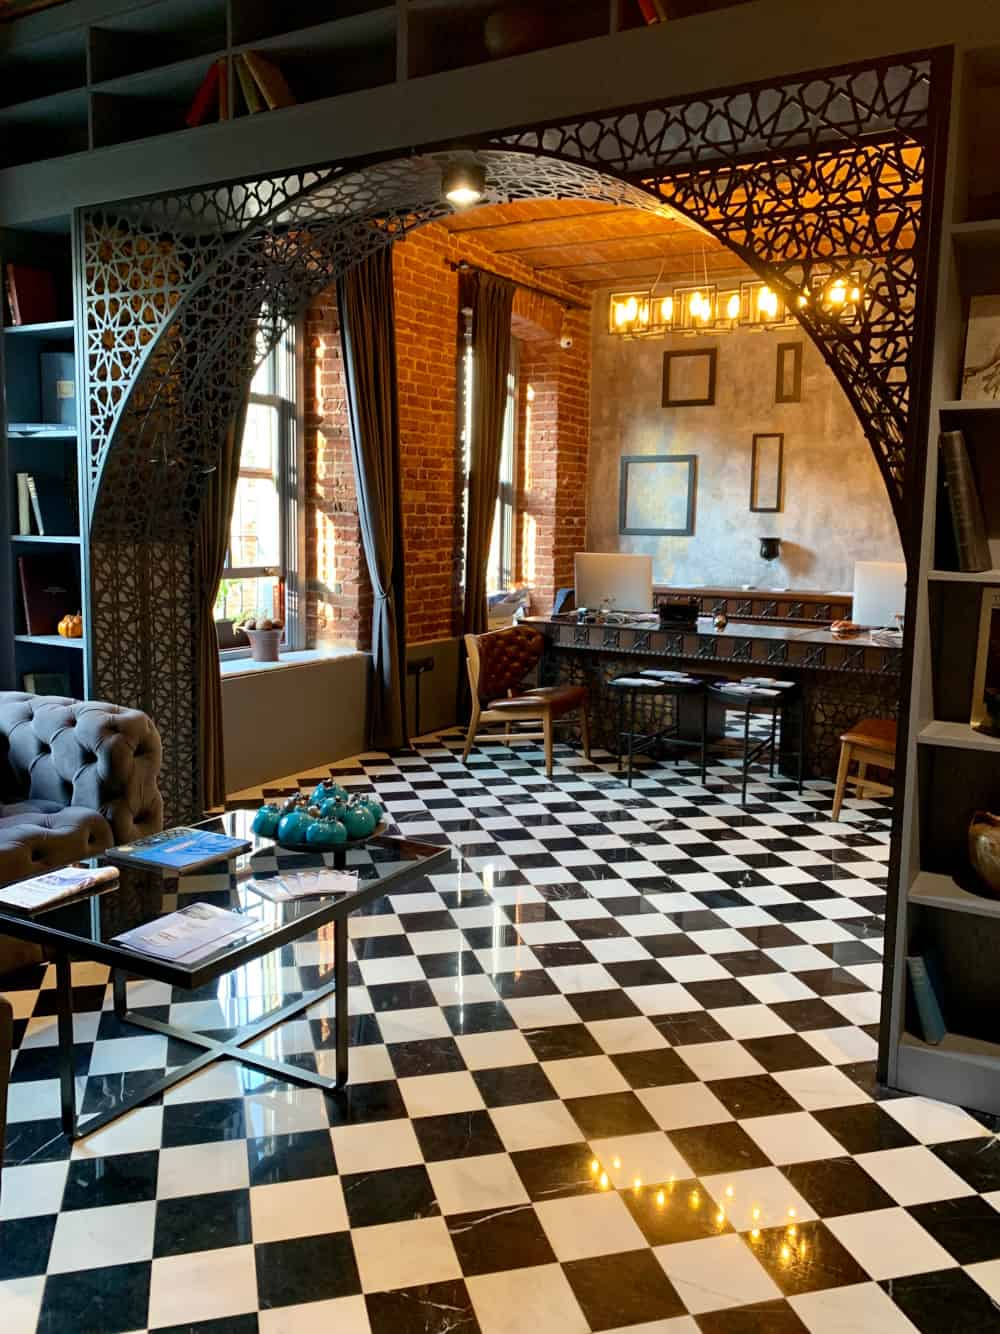 Where to stay in Istanbul - planning a week in Turkey